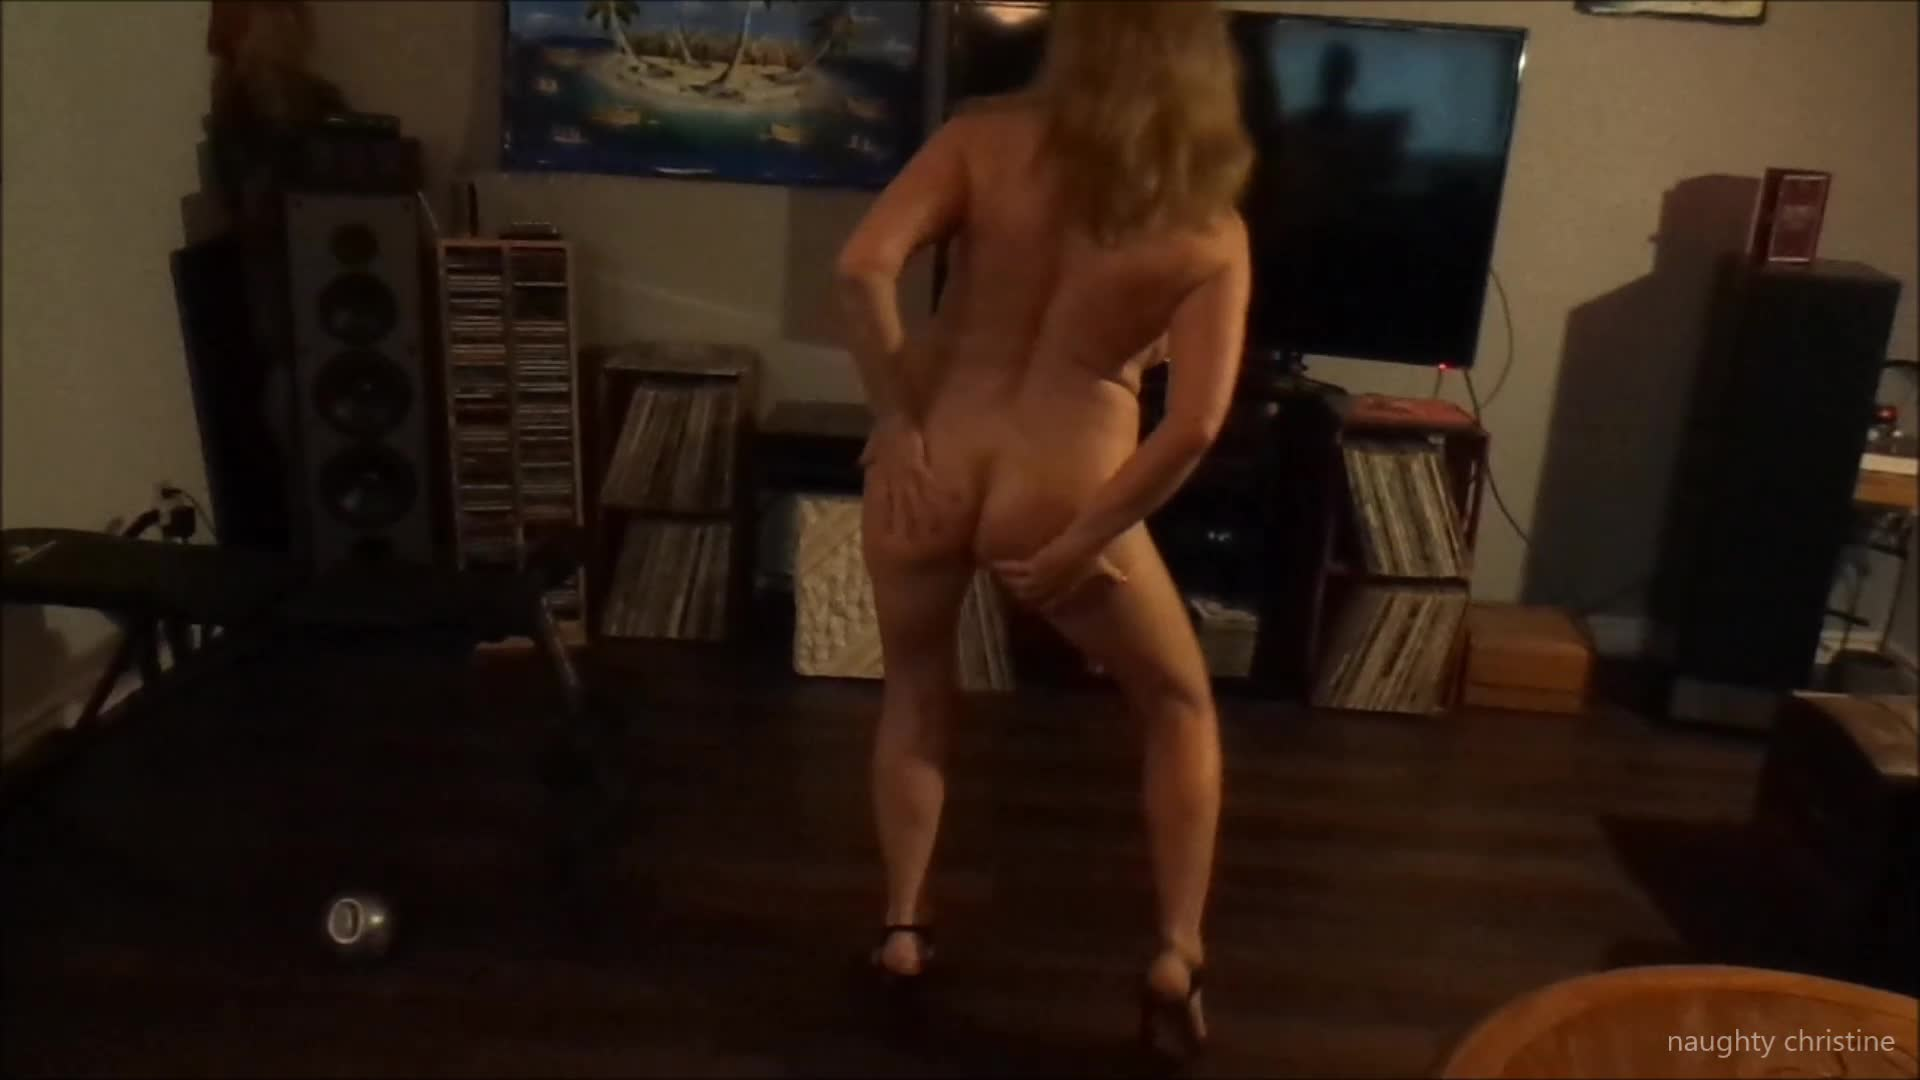 Naughty Christine'd vid